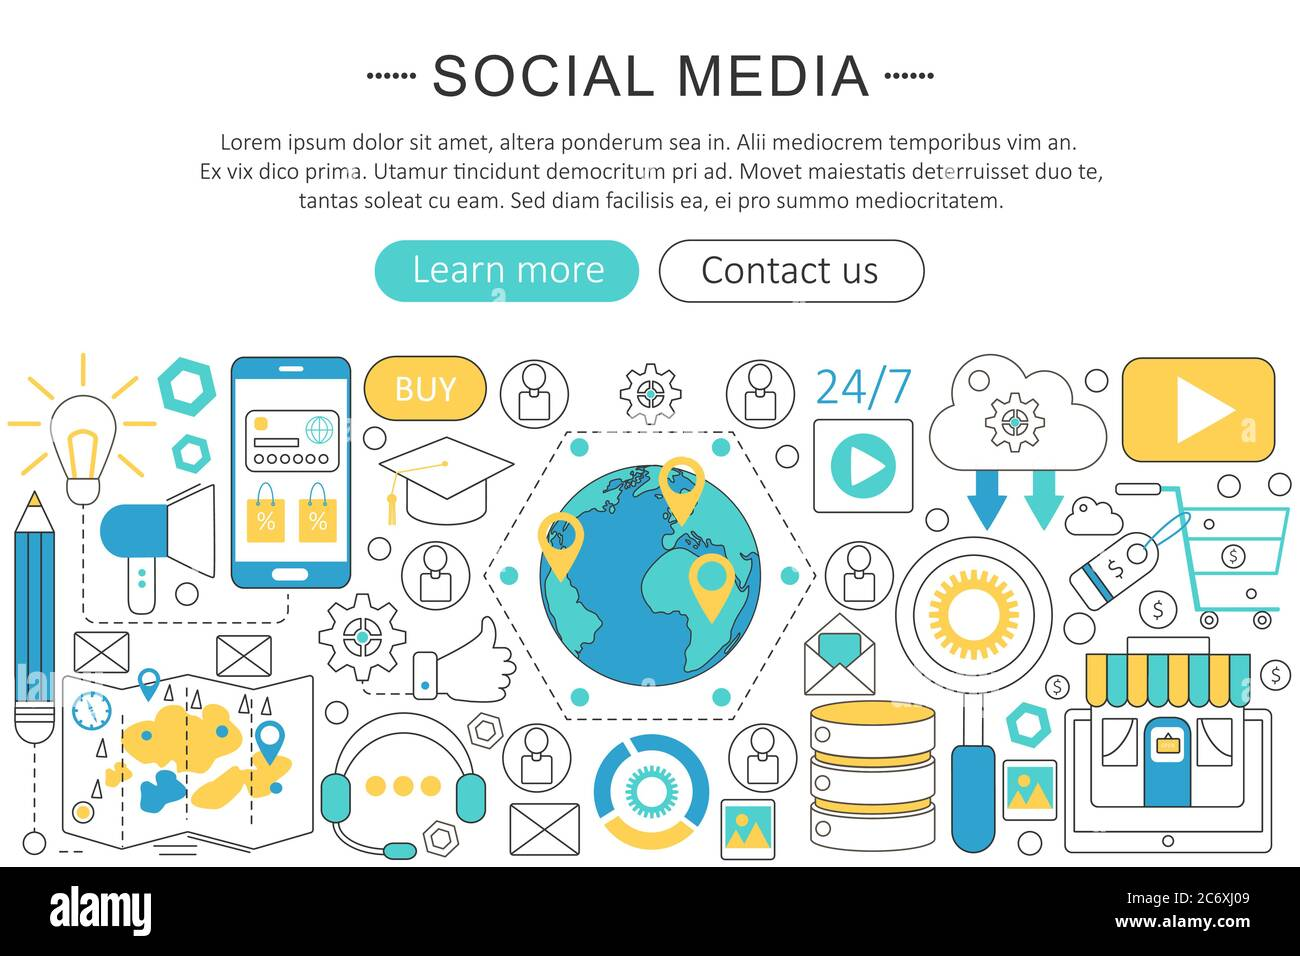 Vector Modern Line Flat Design Social Media Concept Social Media Icons Website Header App Design Poster Banner Stock Vector Image Art Alamy